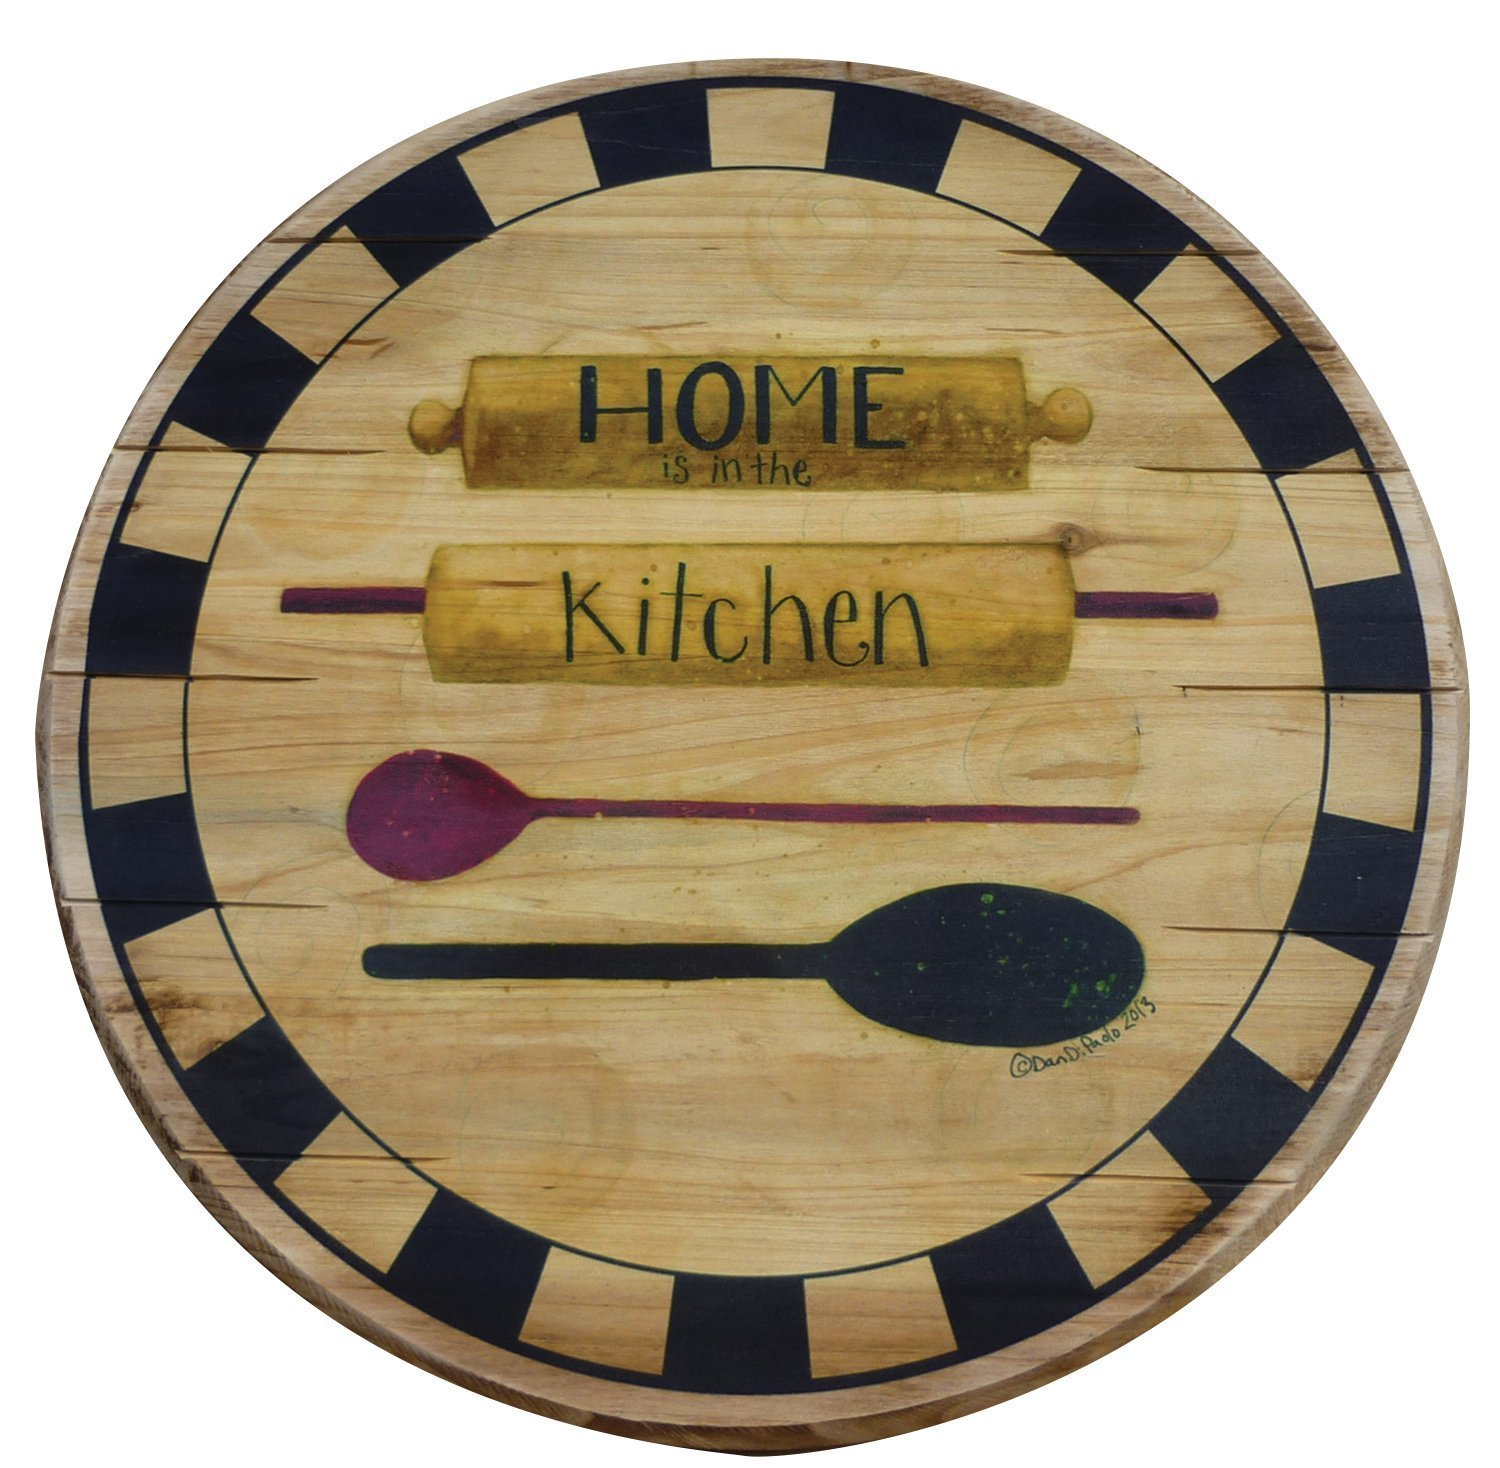 Boston Warehouse Hand Crafted Wood Lazy Susan and Turntable, Home Is In The Kitchen